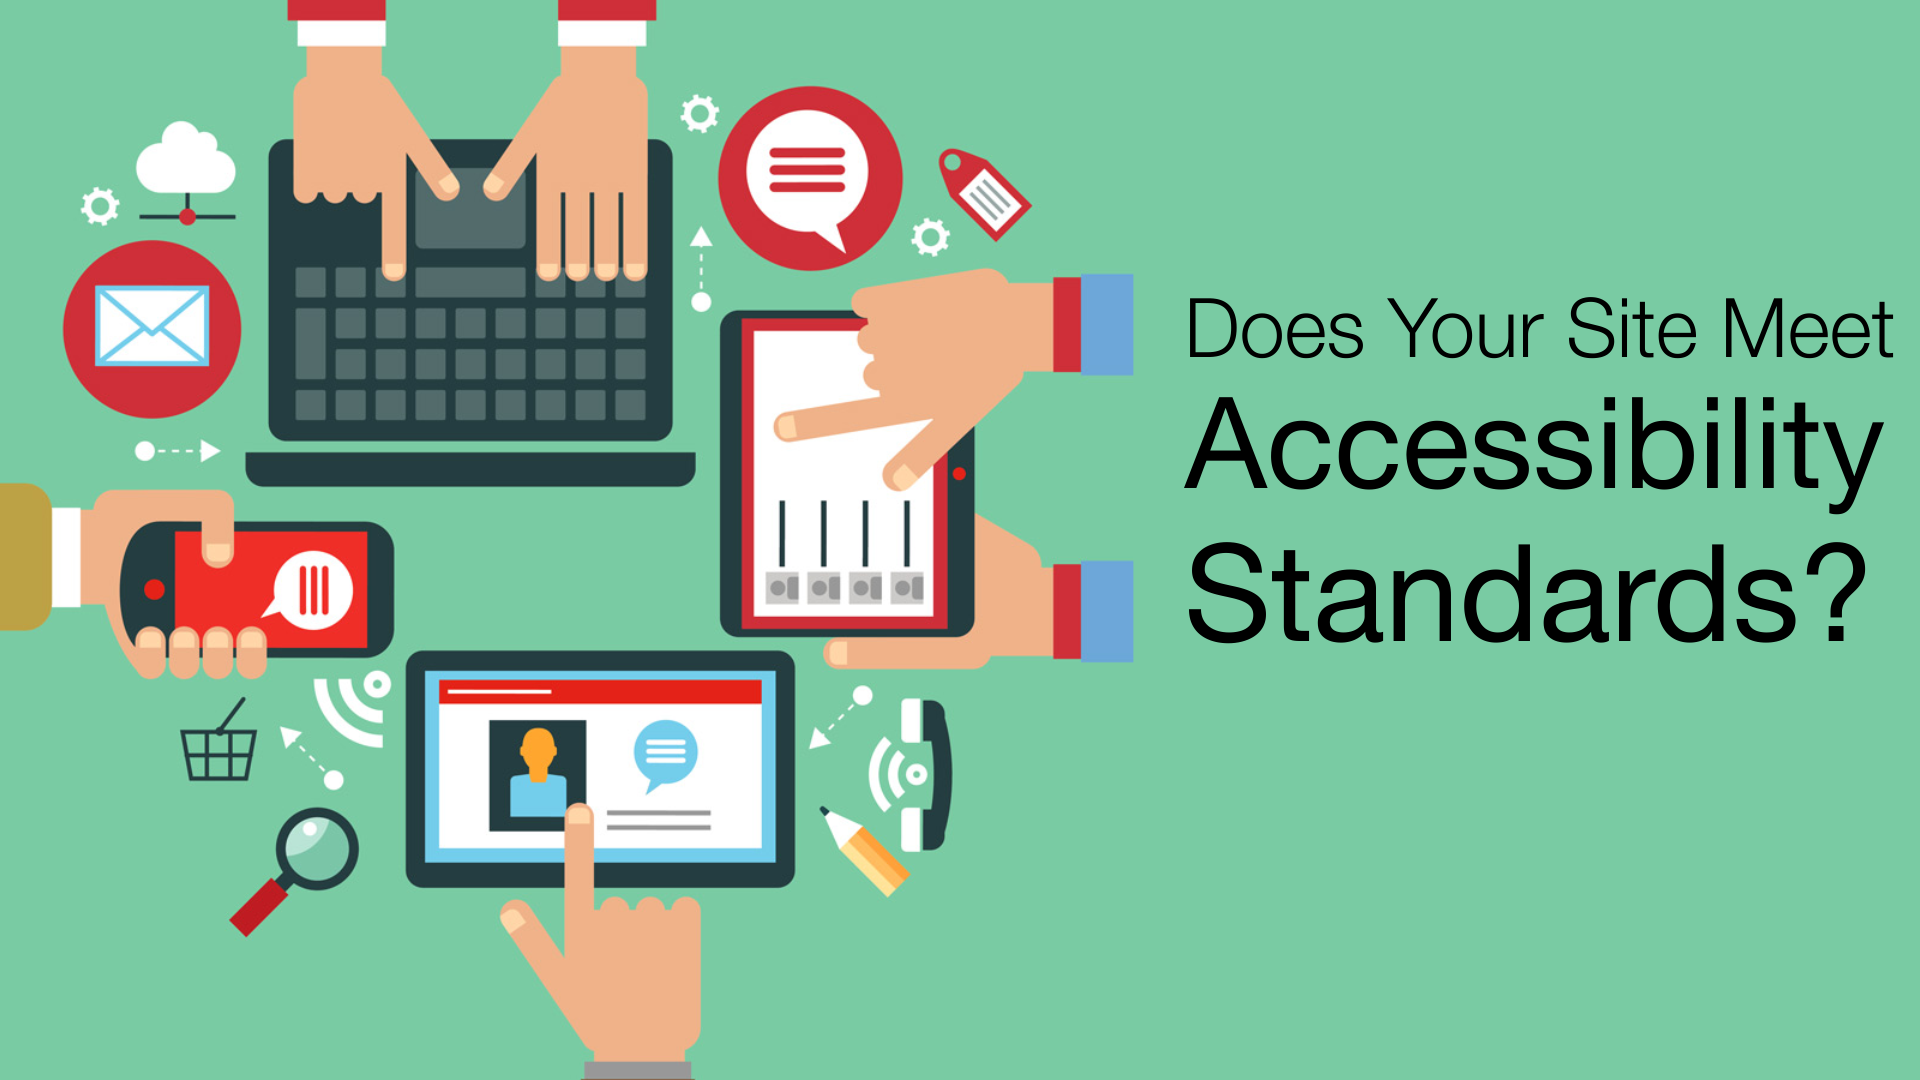 Does-Your-Site-Meet-Accessibility-Standards_nr1uyg